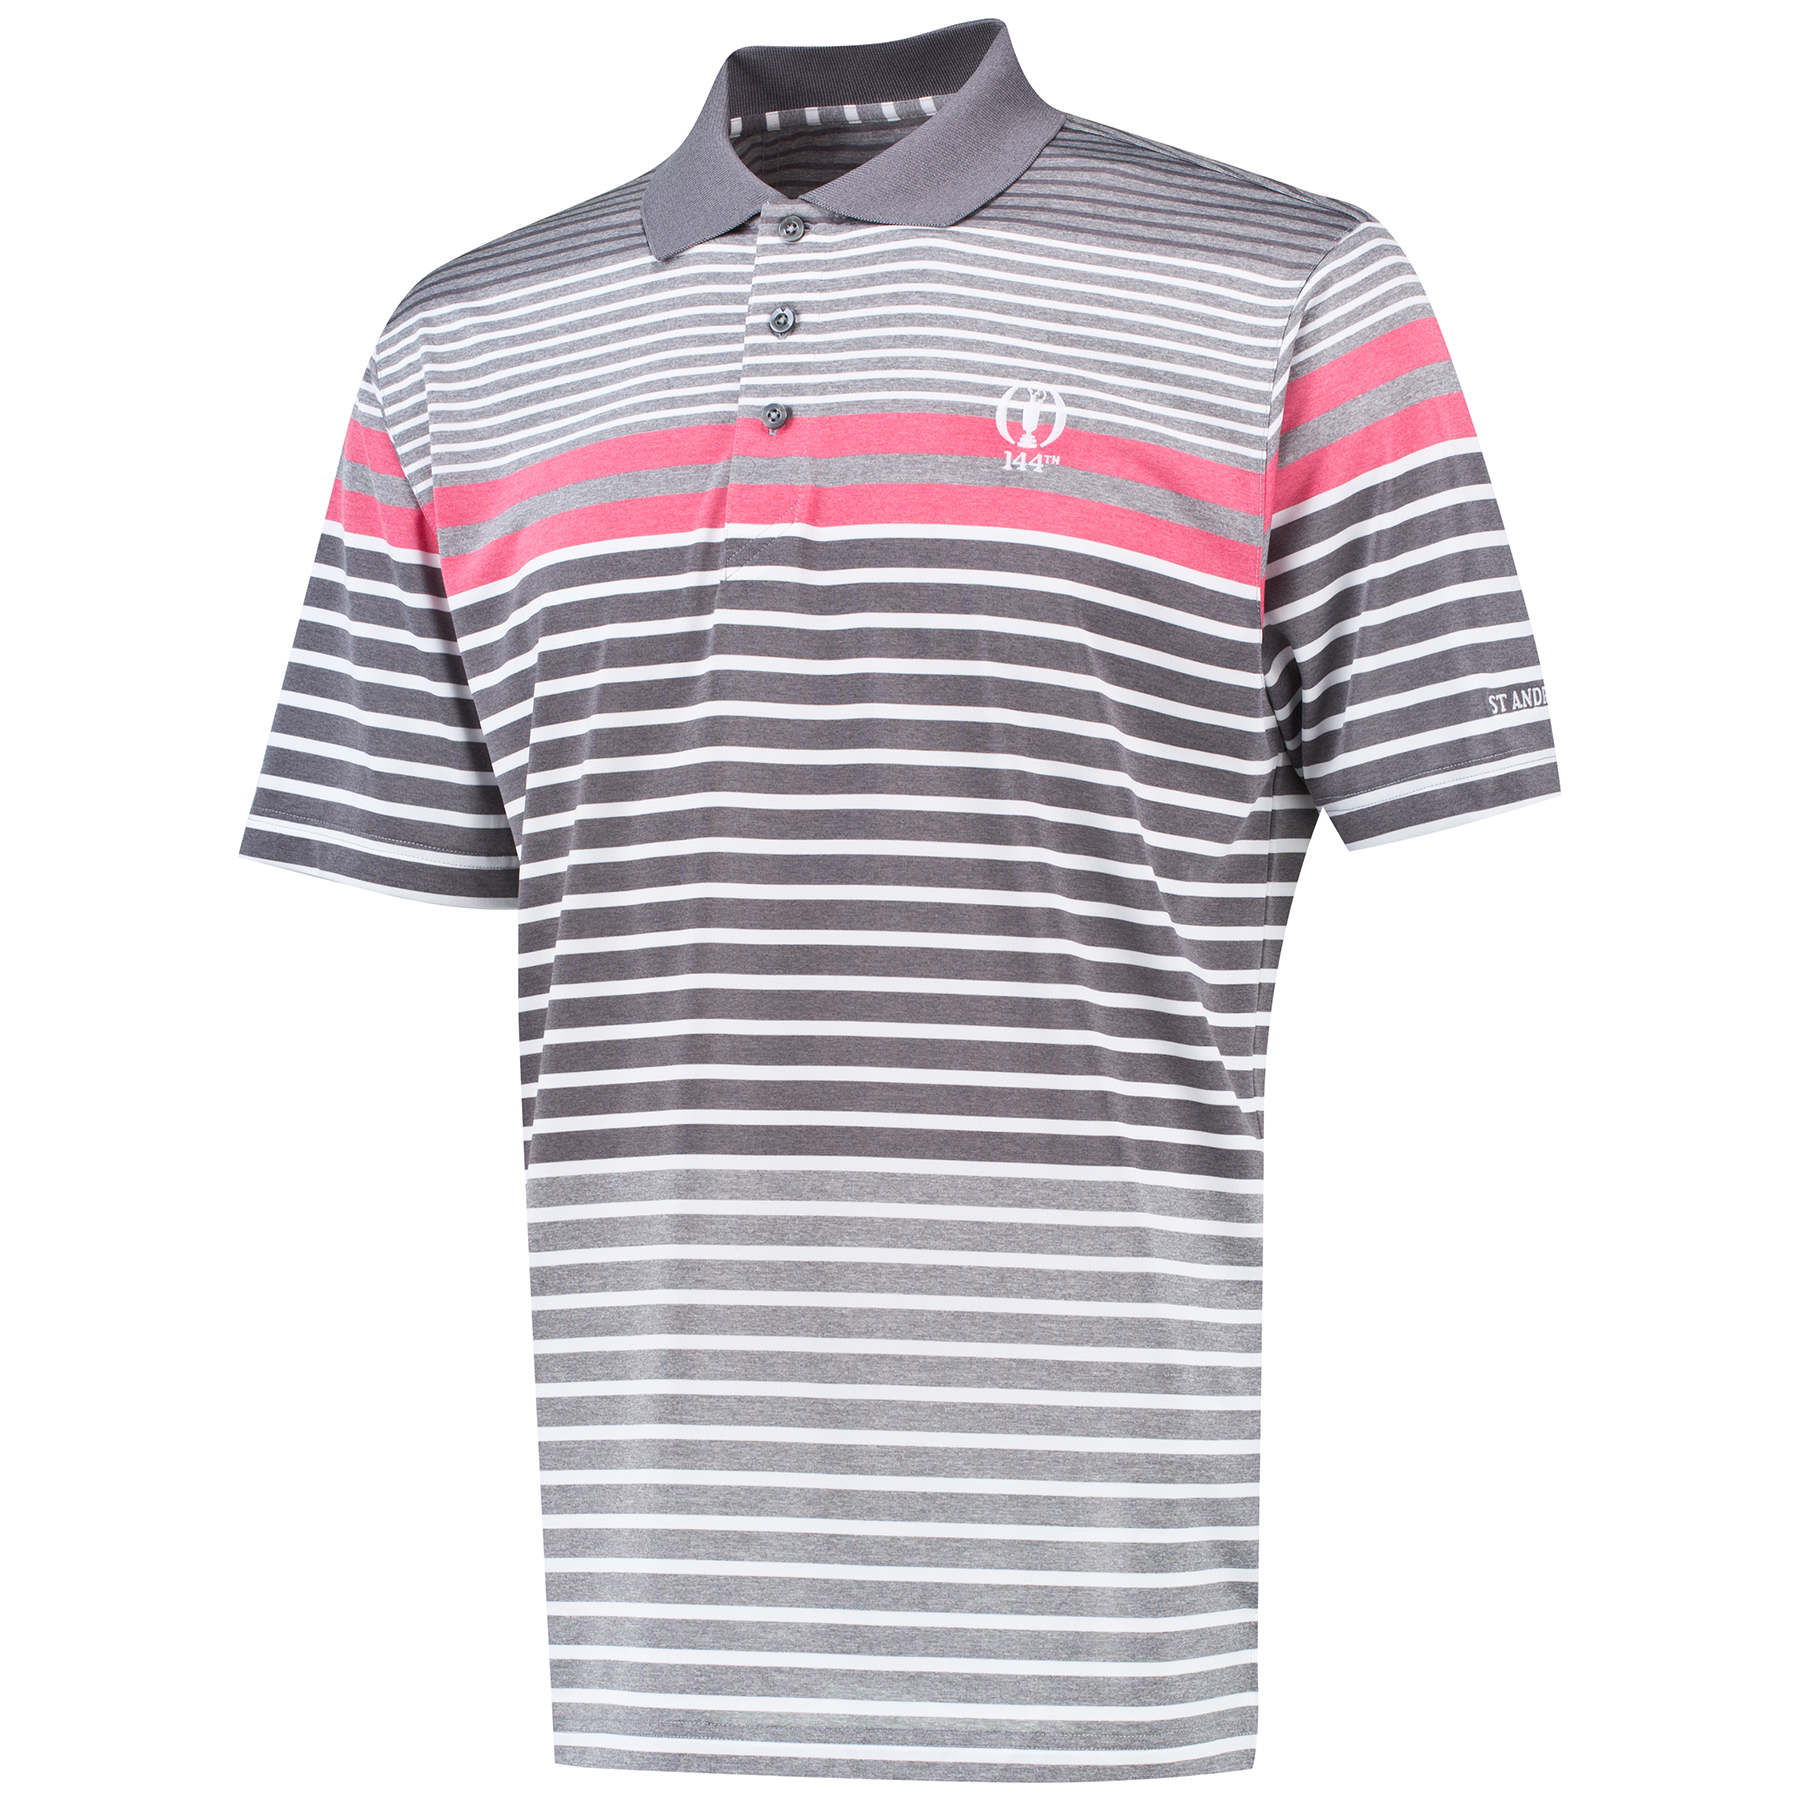 The Open 144th St Andrews Thermal Regulation Ombre Stripe Polo - Platinum/Pomegranate